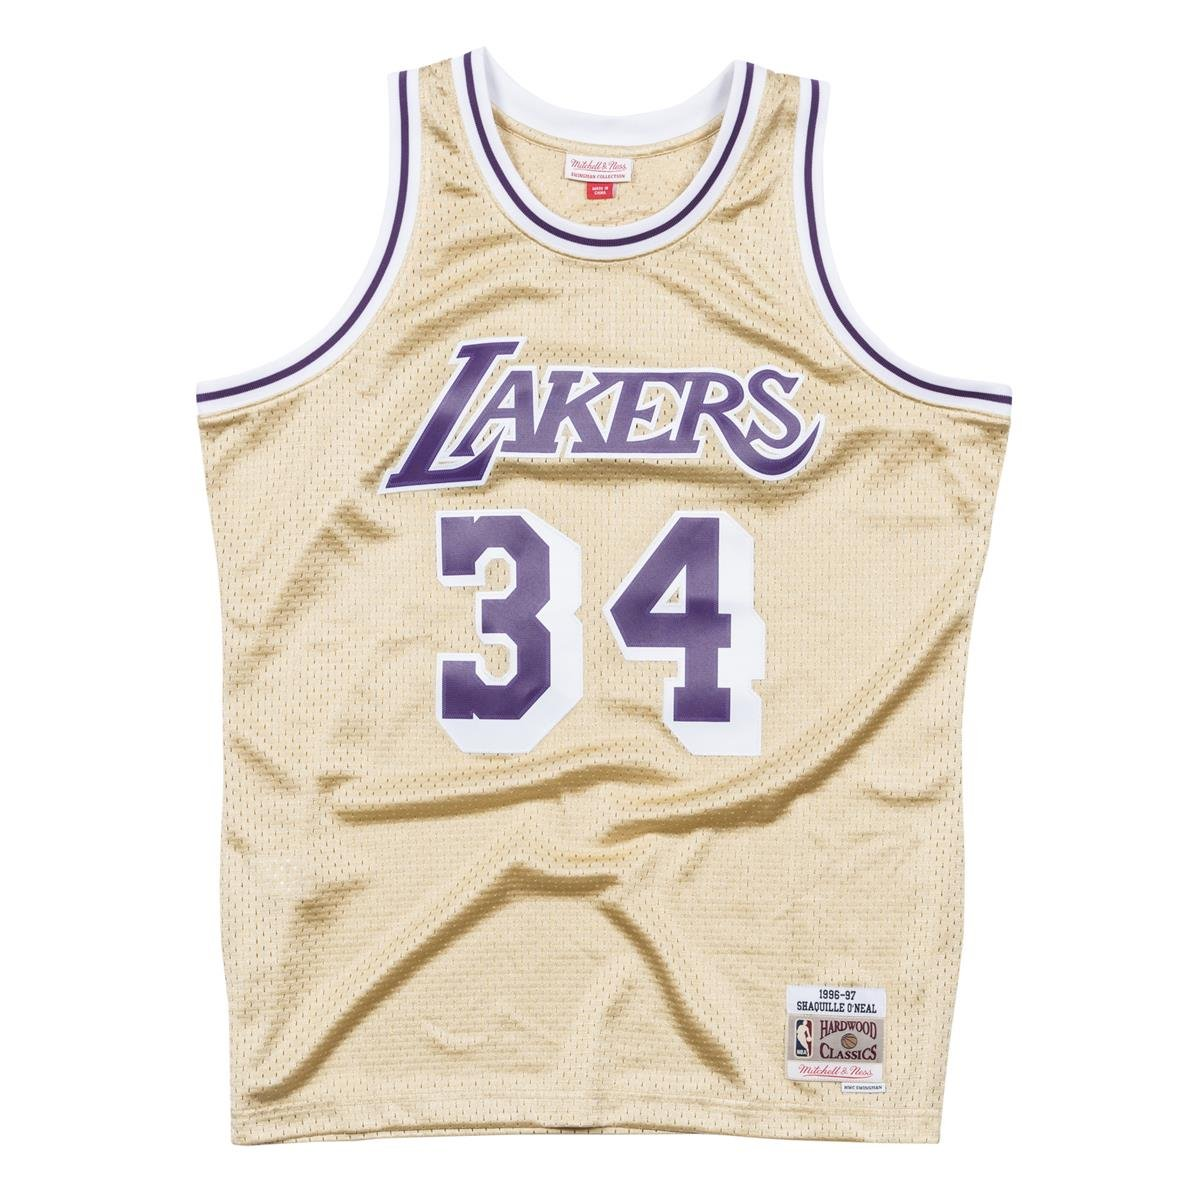 Mitchell & Ness NBA Los Angeles Lakers Shaquille O'Neal 1996-97 Swingman Jersey Gold Large